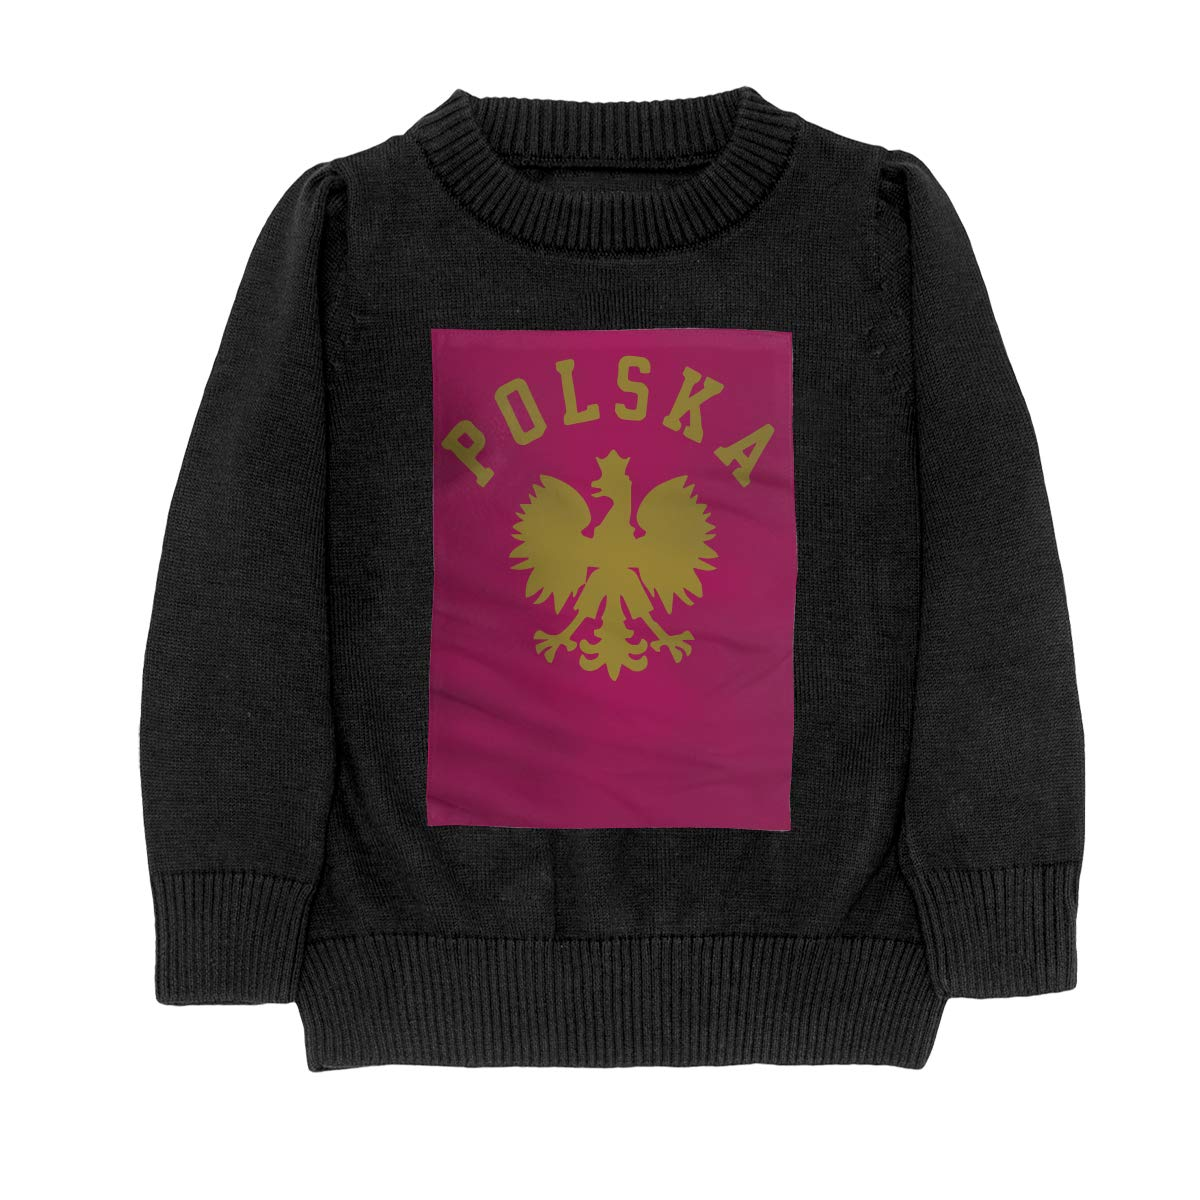 WWTBBJ-B Polska Polish Country Pride Fashion Teenager Boys /& Girls Unisex Sweater Keep Warm